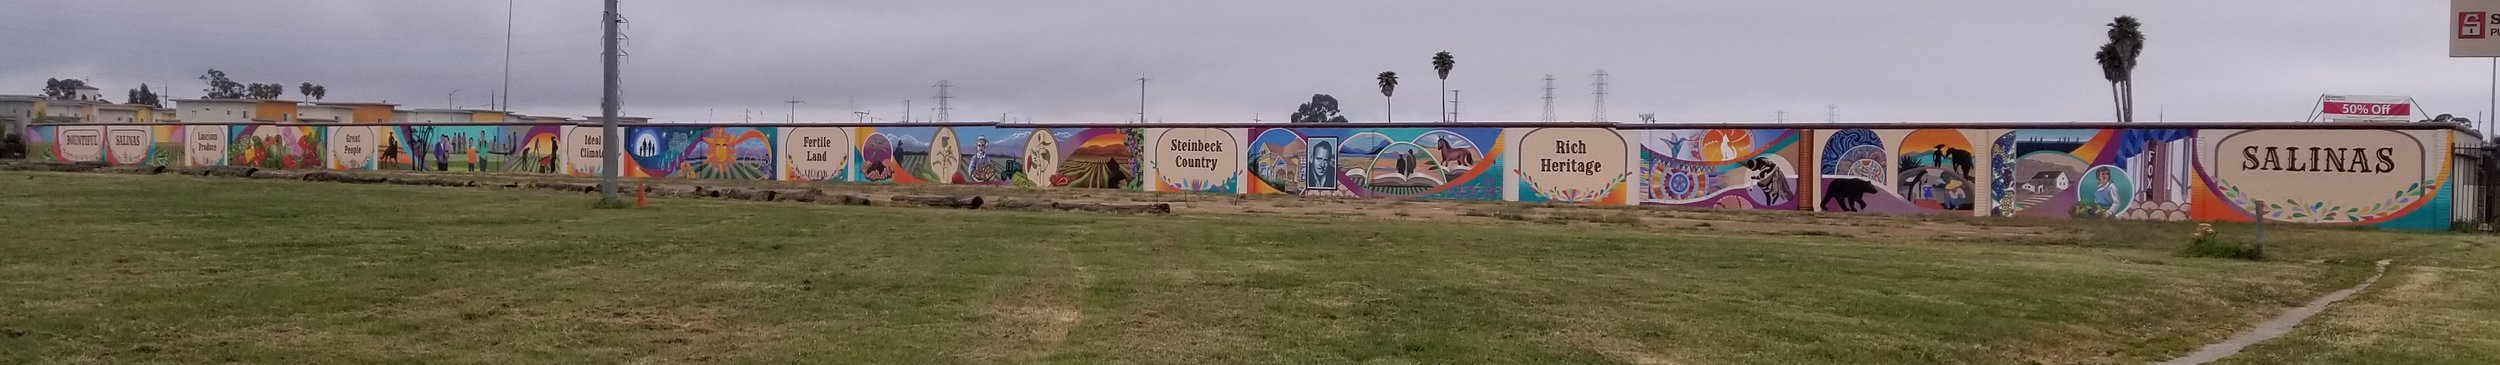 600' Long Mural for the City of Salinas at Security Public Storage